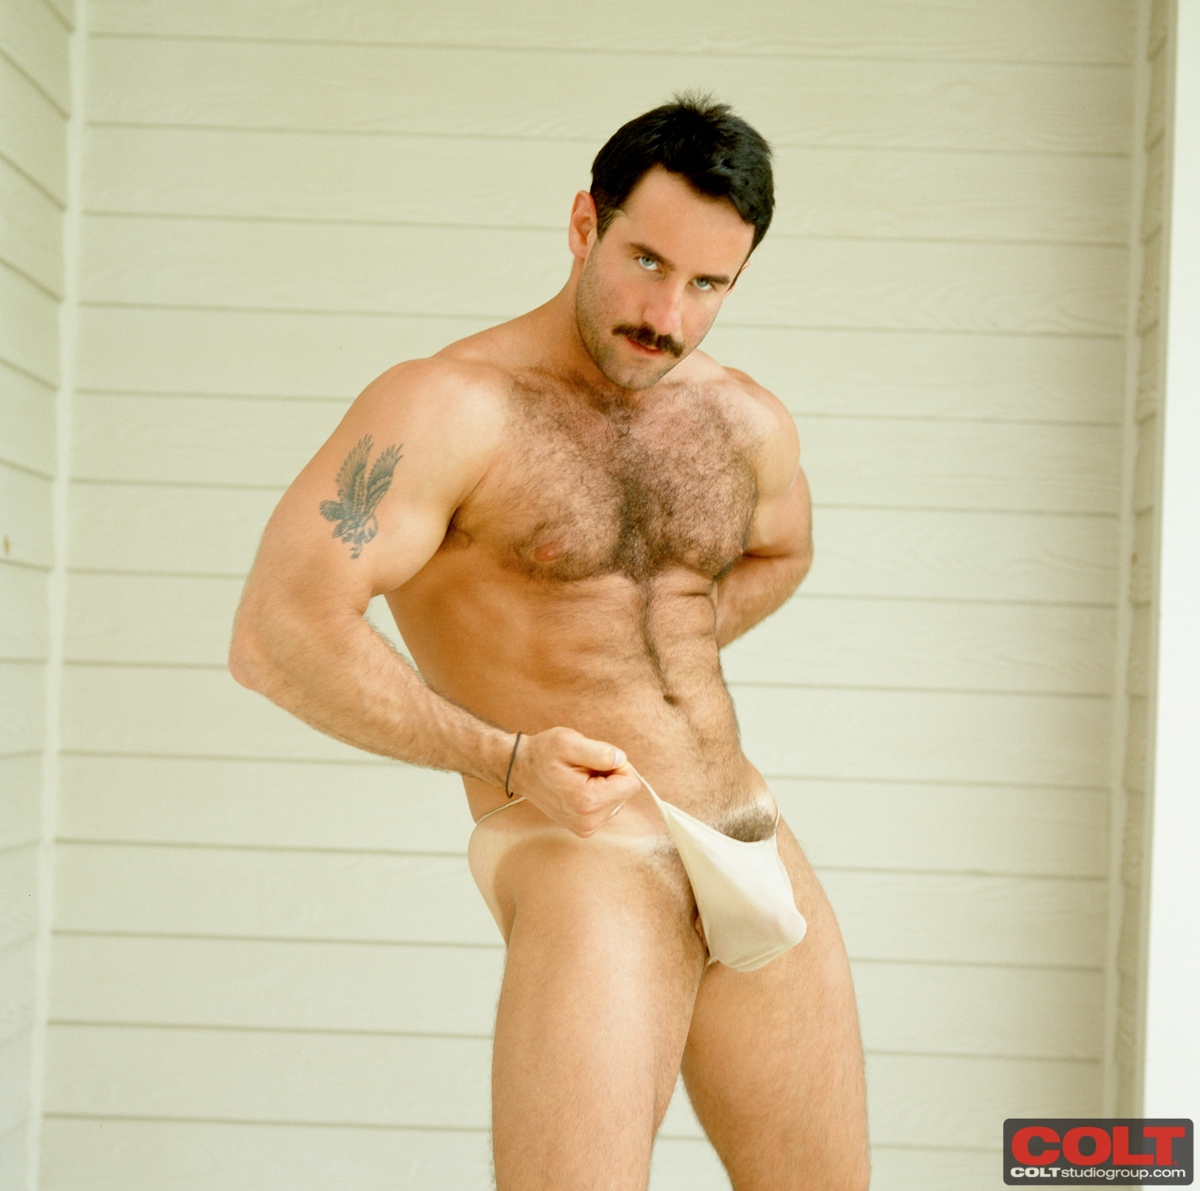 Steve Kelso gay vintage hot daddy dude men porn